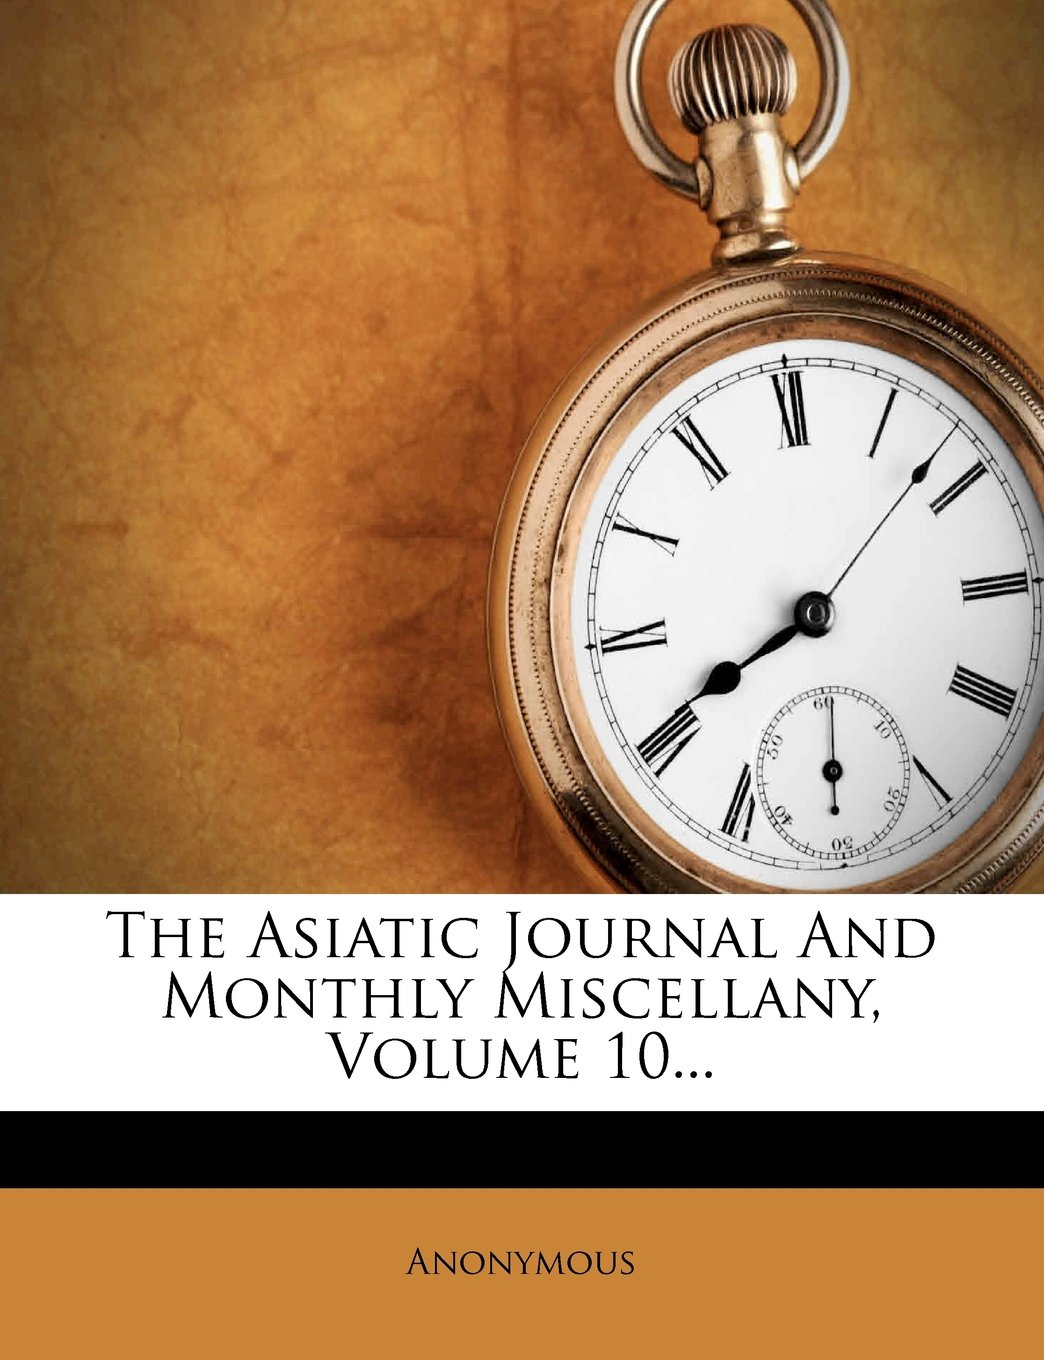 The Asiatic Journal And Monthly Miscellany, Volume 10... PDF